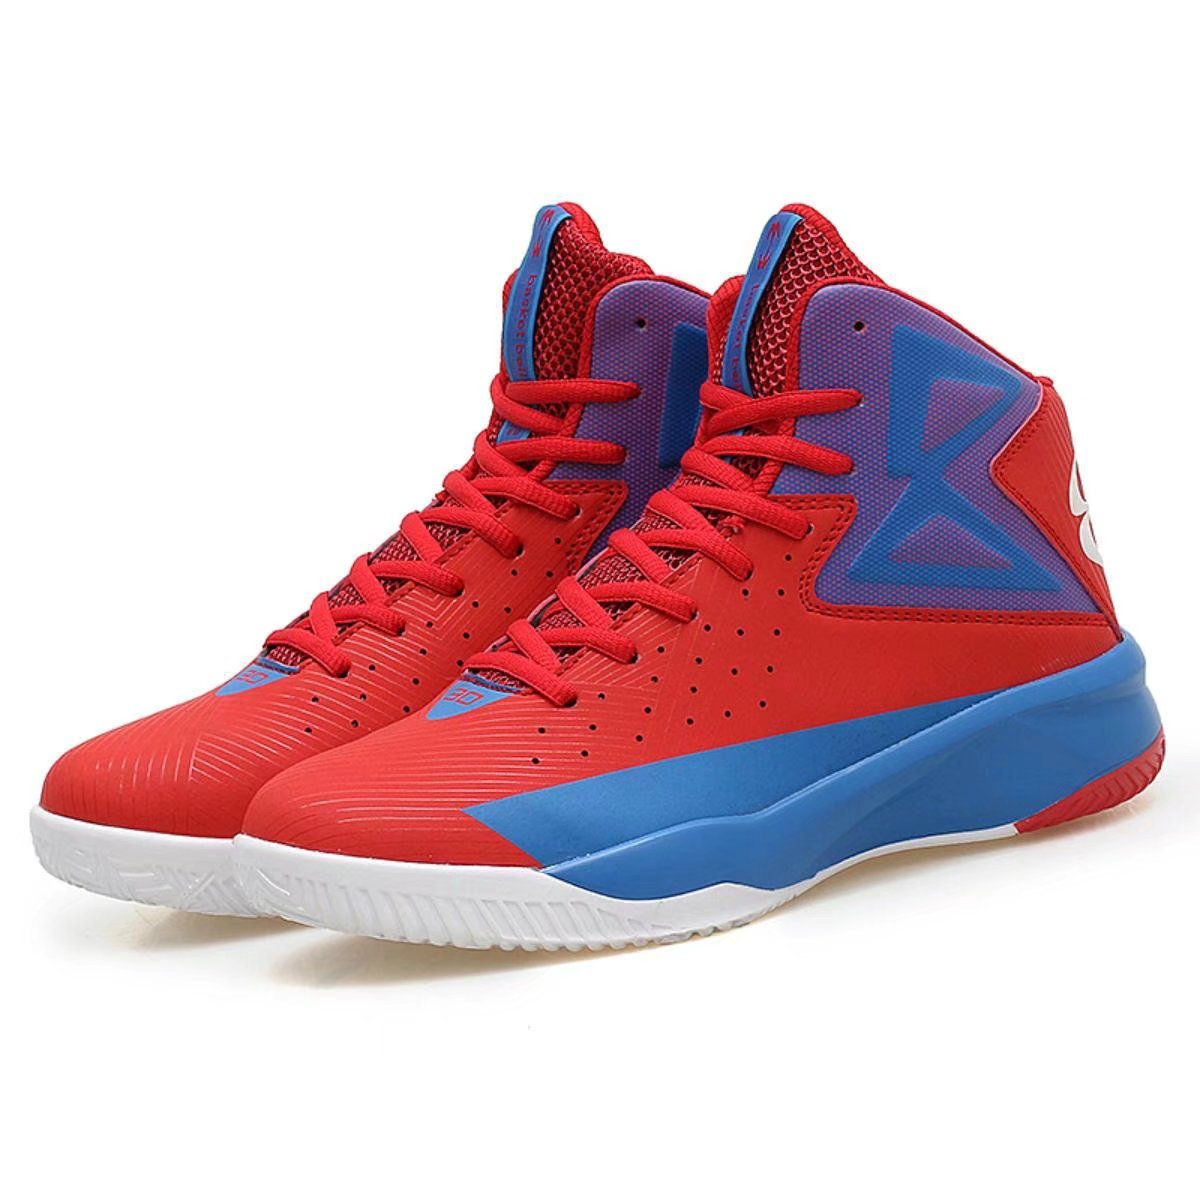 Men s Air Performance Allstart Light Sports Shoe Running Casual High Cut Breathable Mid Basketball Shoes Sneaker for Boy